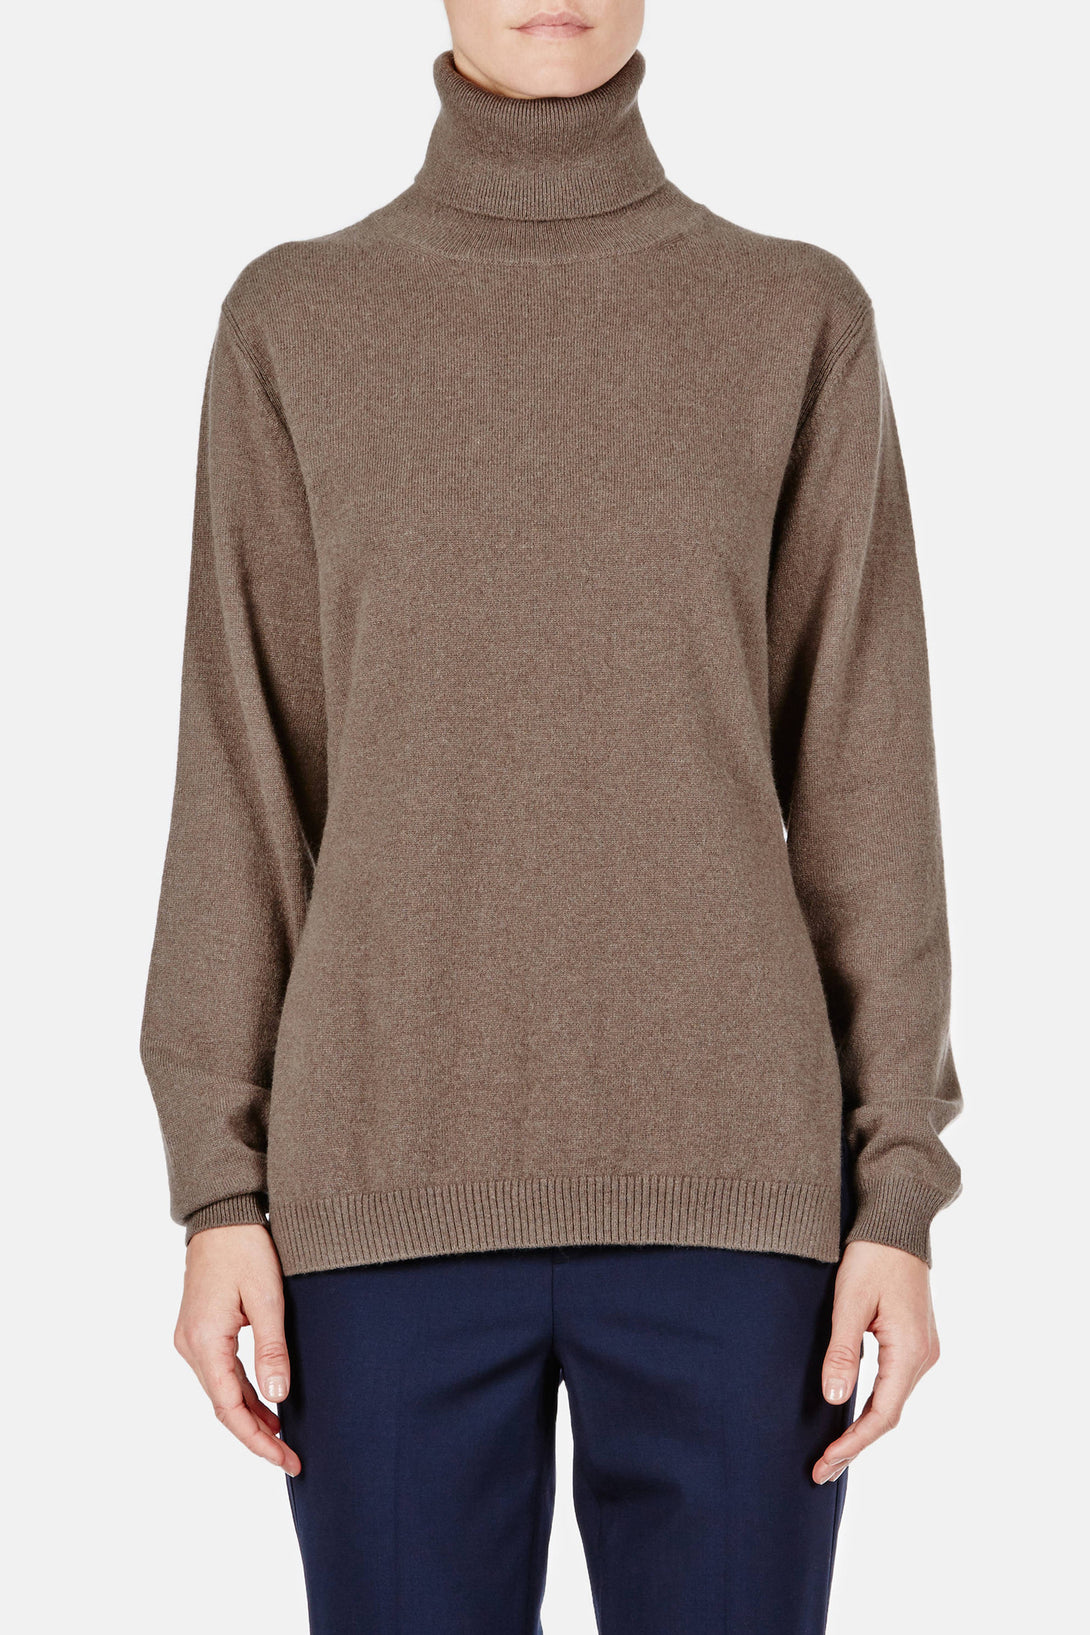 Turtleneck Sweater - Fango